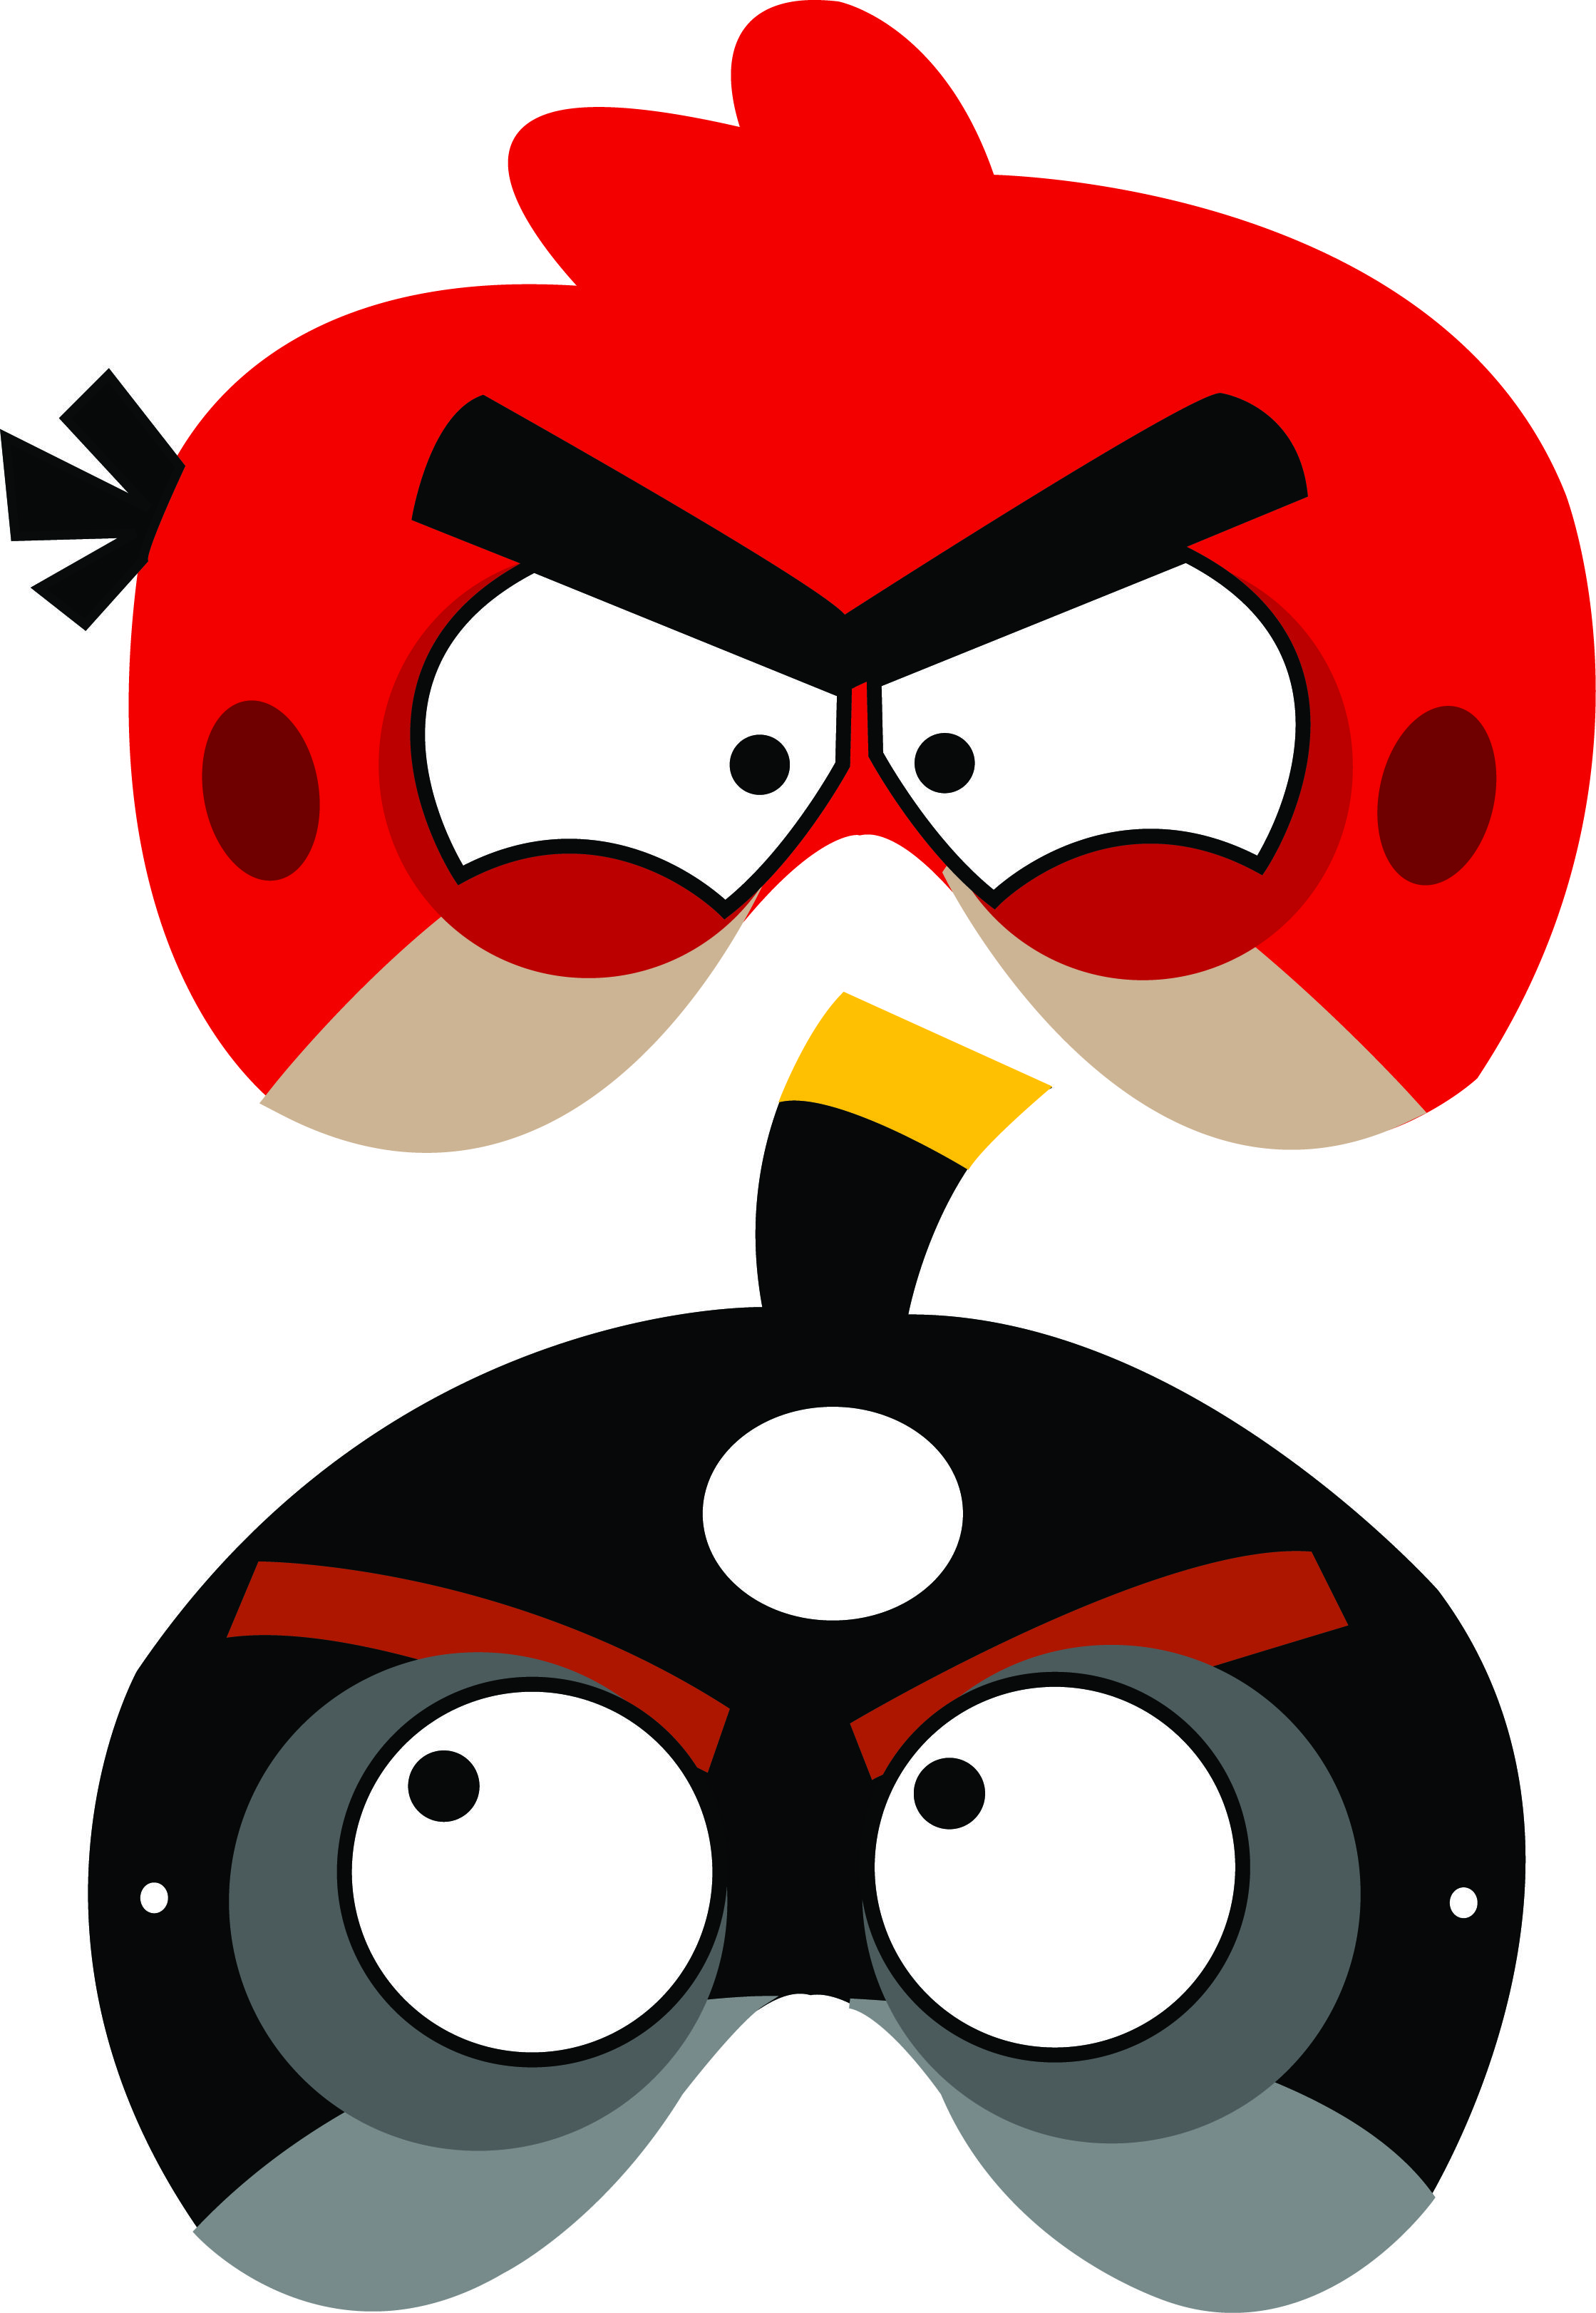 angry birds free printable masks | Luca's B-day Party | Pinterest ...